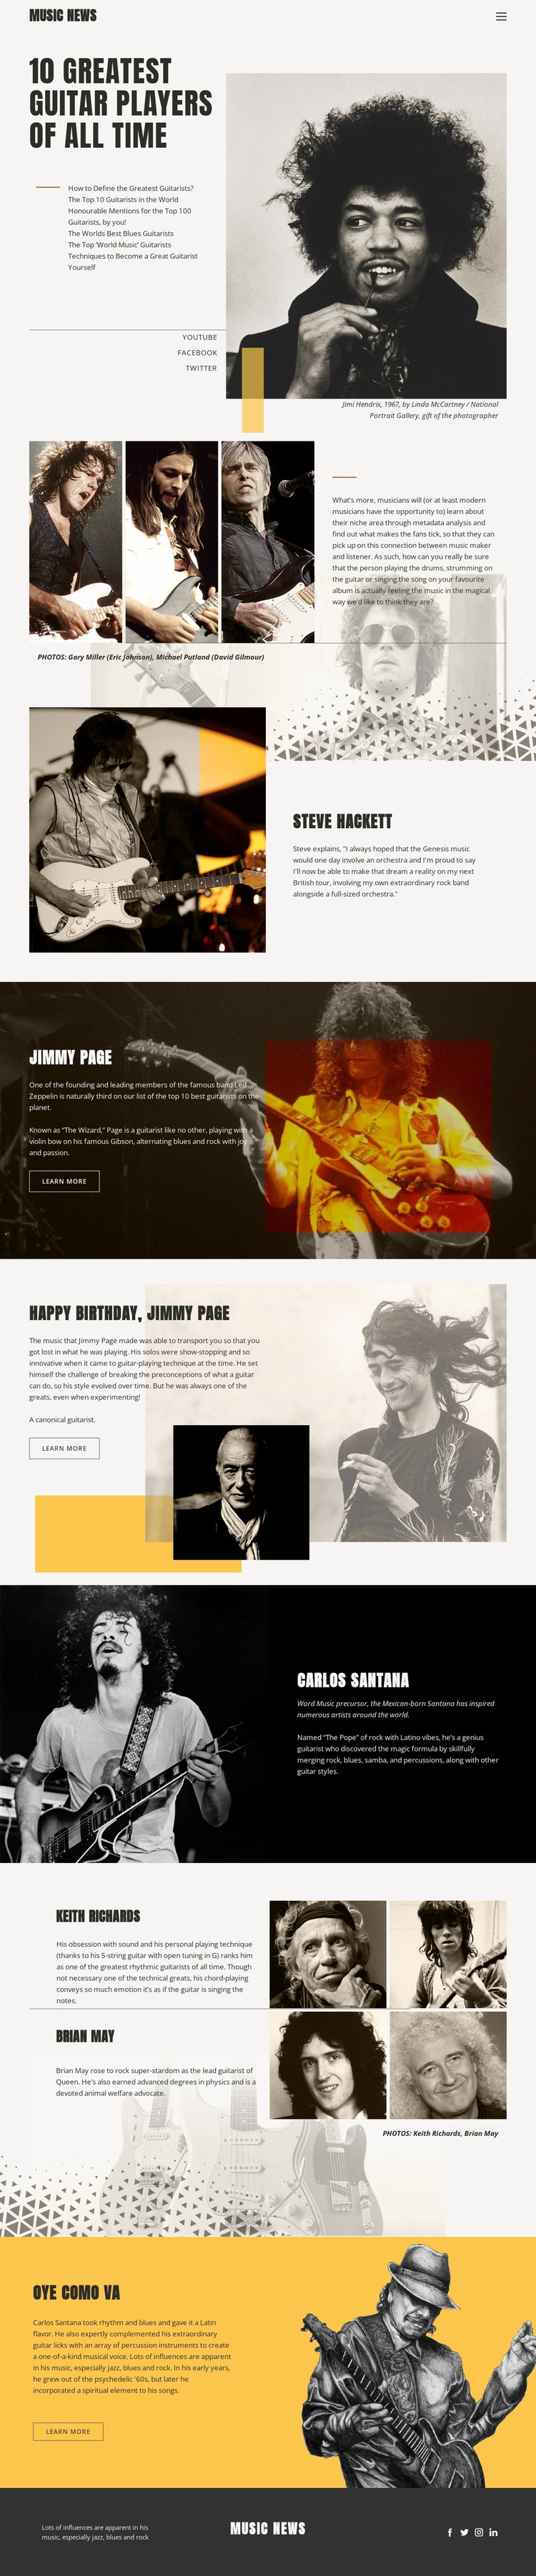 The Top Guitar Players Website Mockup